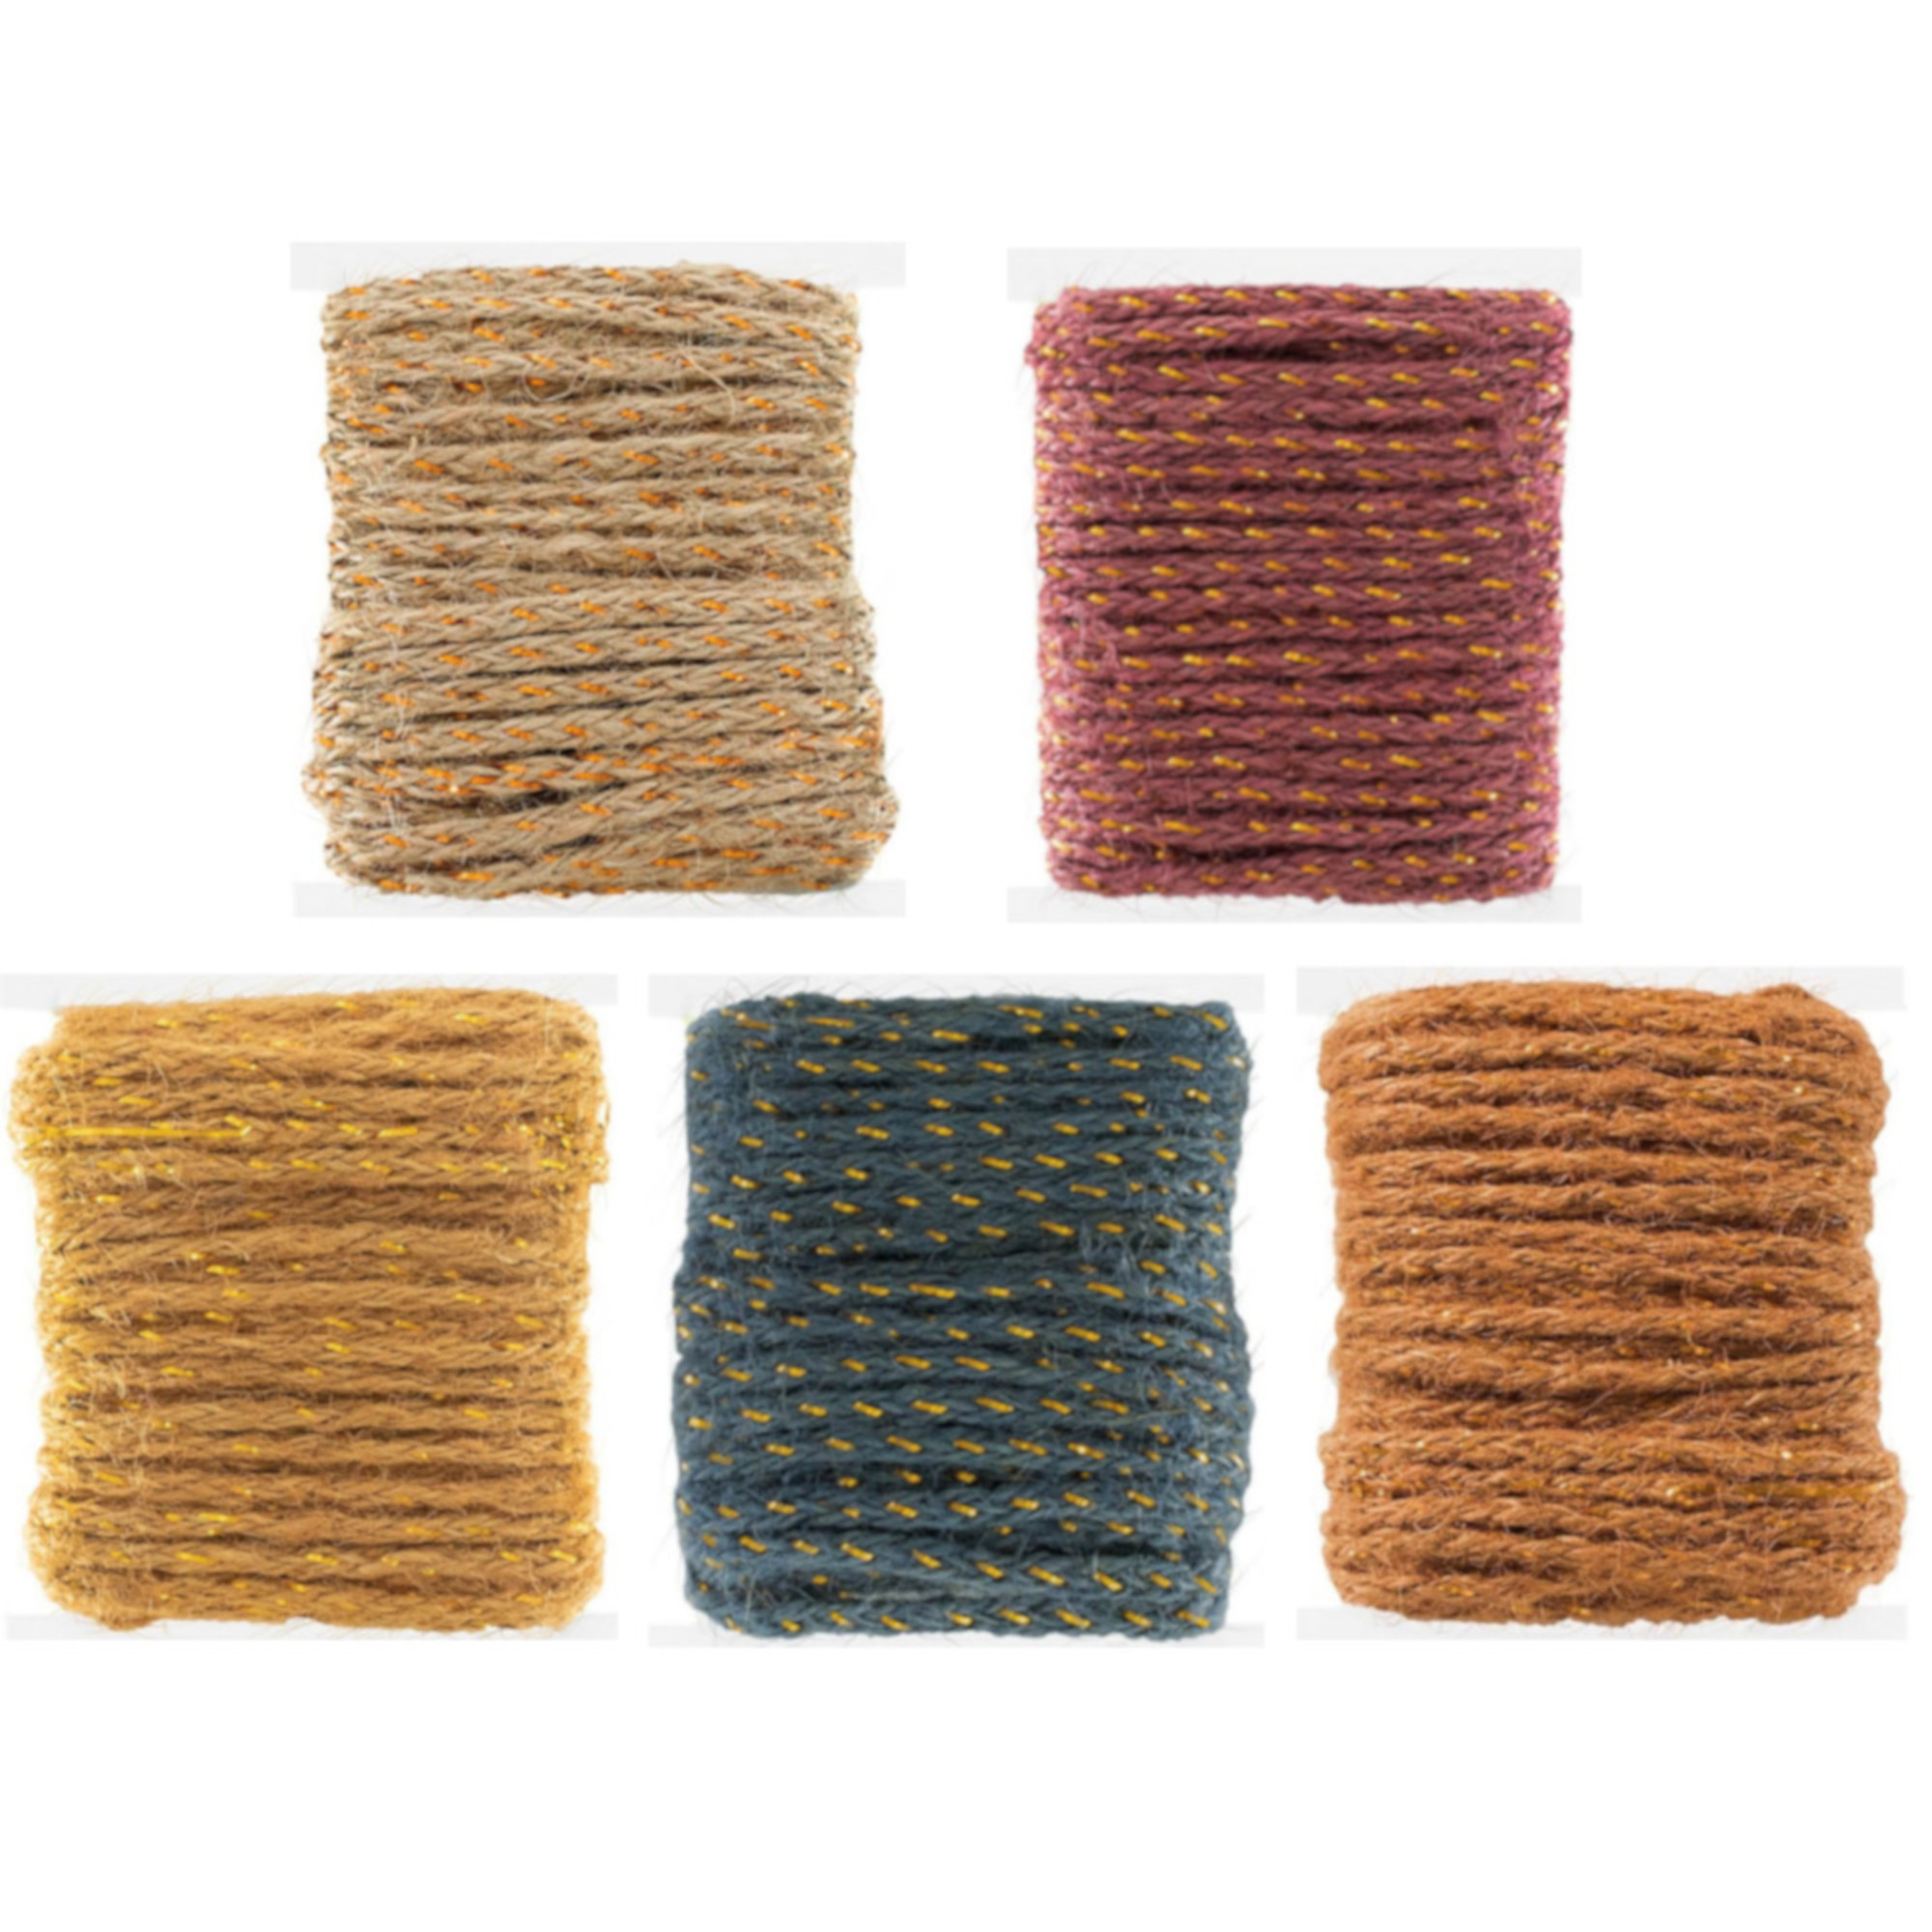 Craft County Jute Cord in a Large Selection of Colors and Packages - 3mm Diameter - Each Spool is 10 Meters of Jute - You'll Get 50 or 100 meters in Total with any Choice - Great for DIY projects